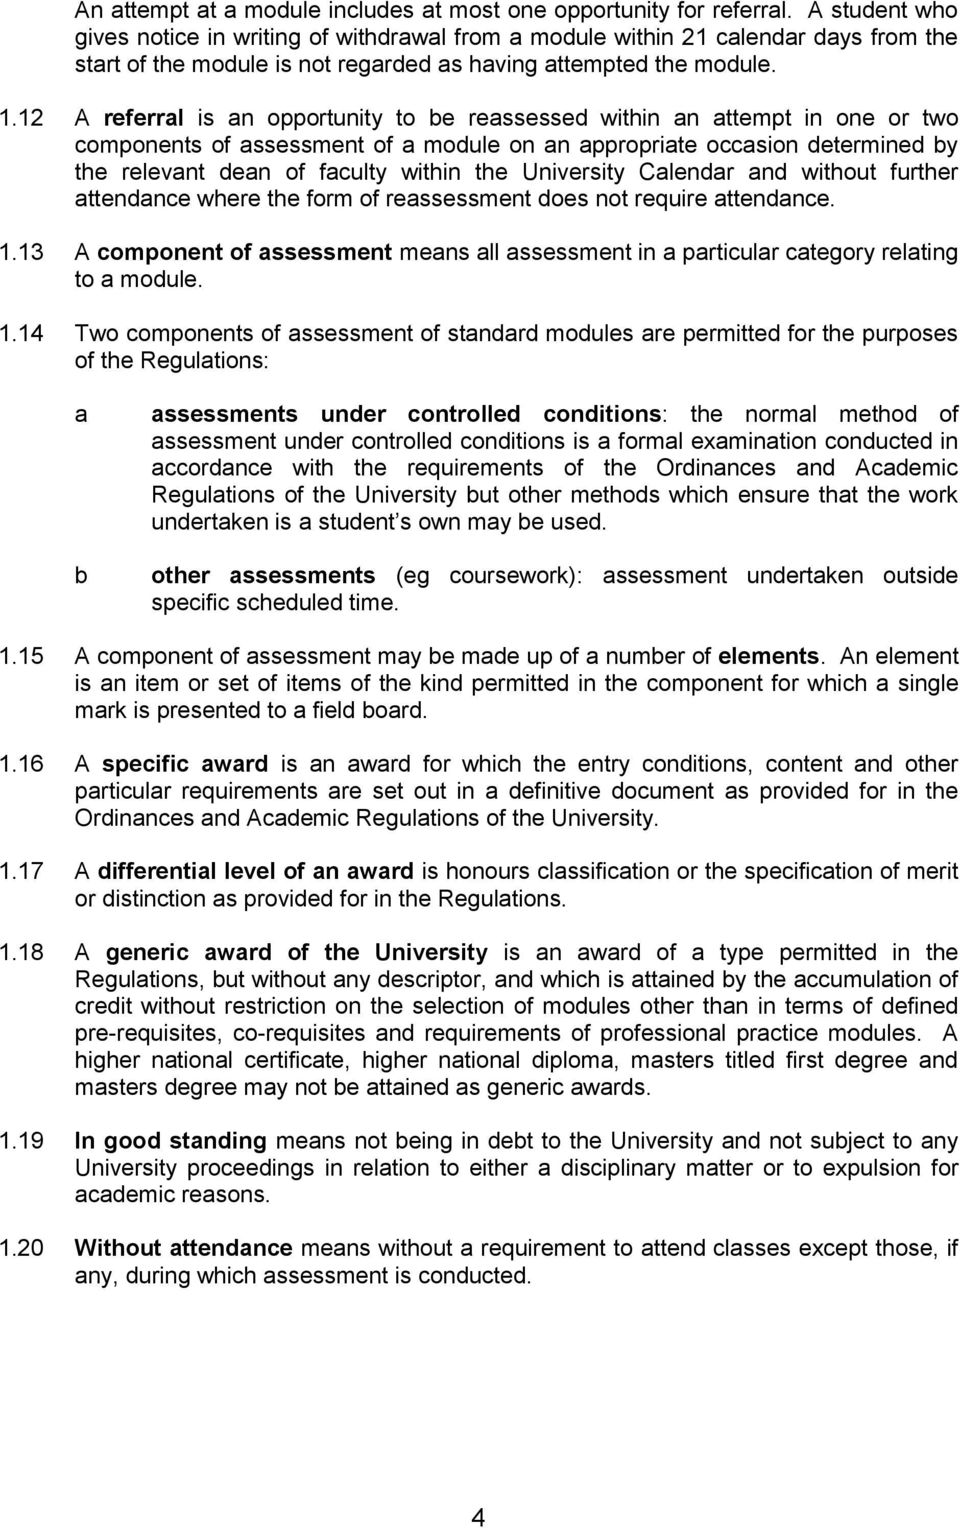 12 A referral is an opportunity to be reassessed within an attempt in one or two components of assessment of a module on an appropriate occasion determined by the relevant dean of faculty within the